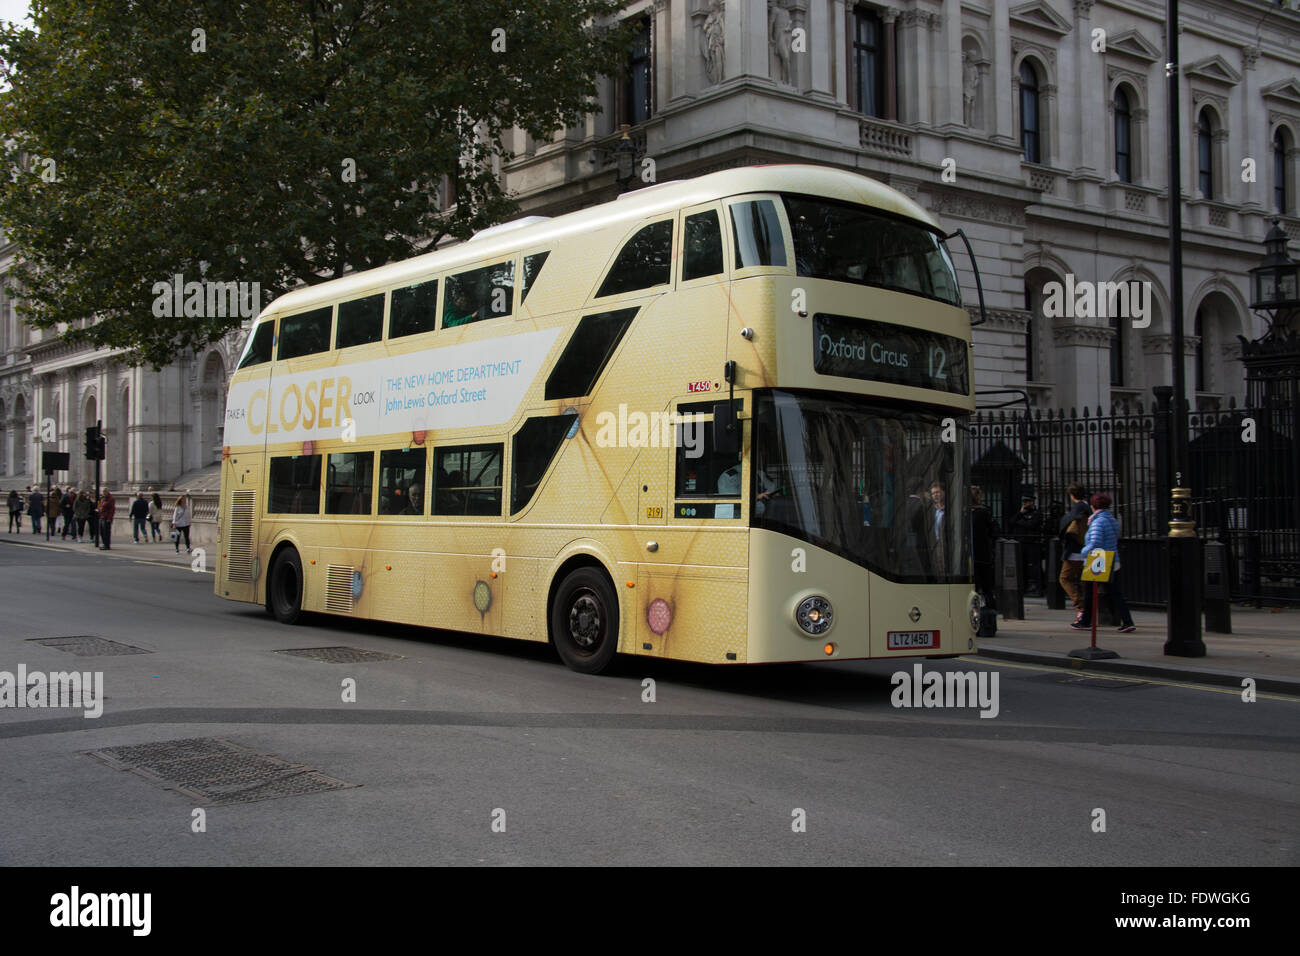 A new London Routemaster bus is coverd in an advert for the new John Lewis store home department. It is on Route - Stock Image